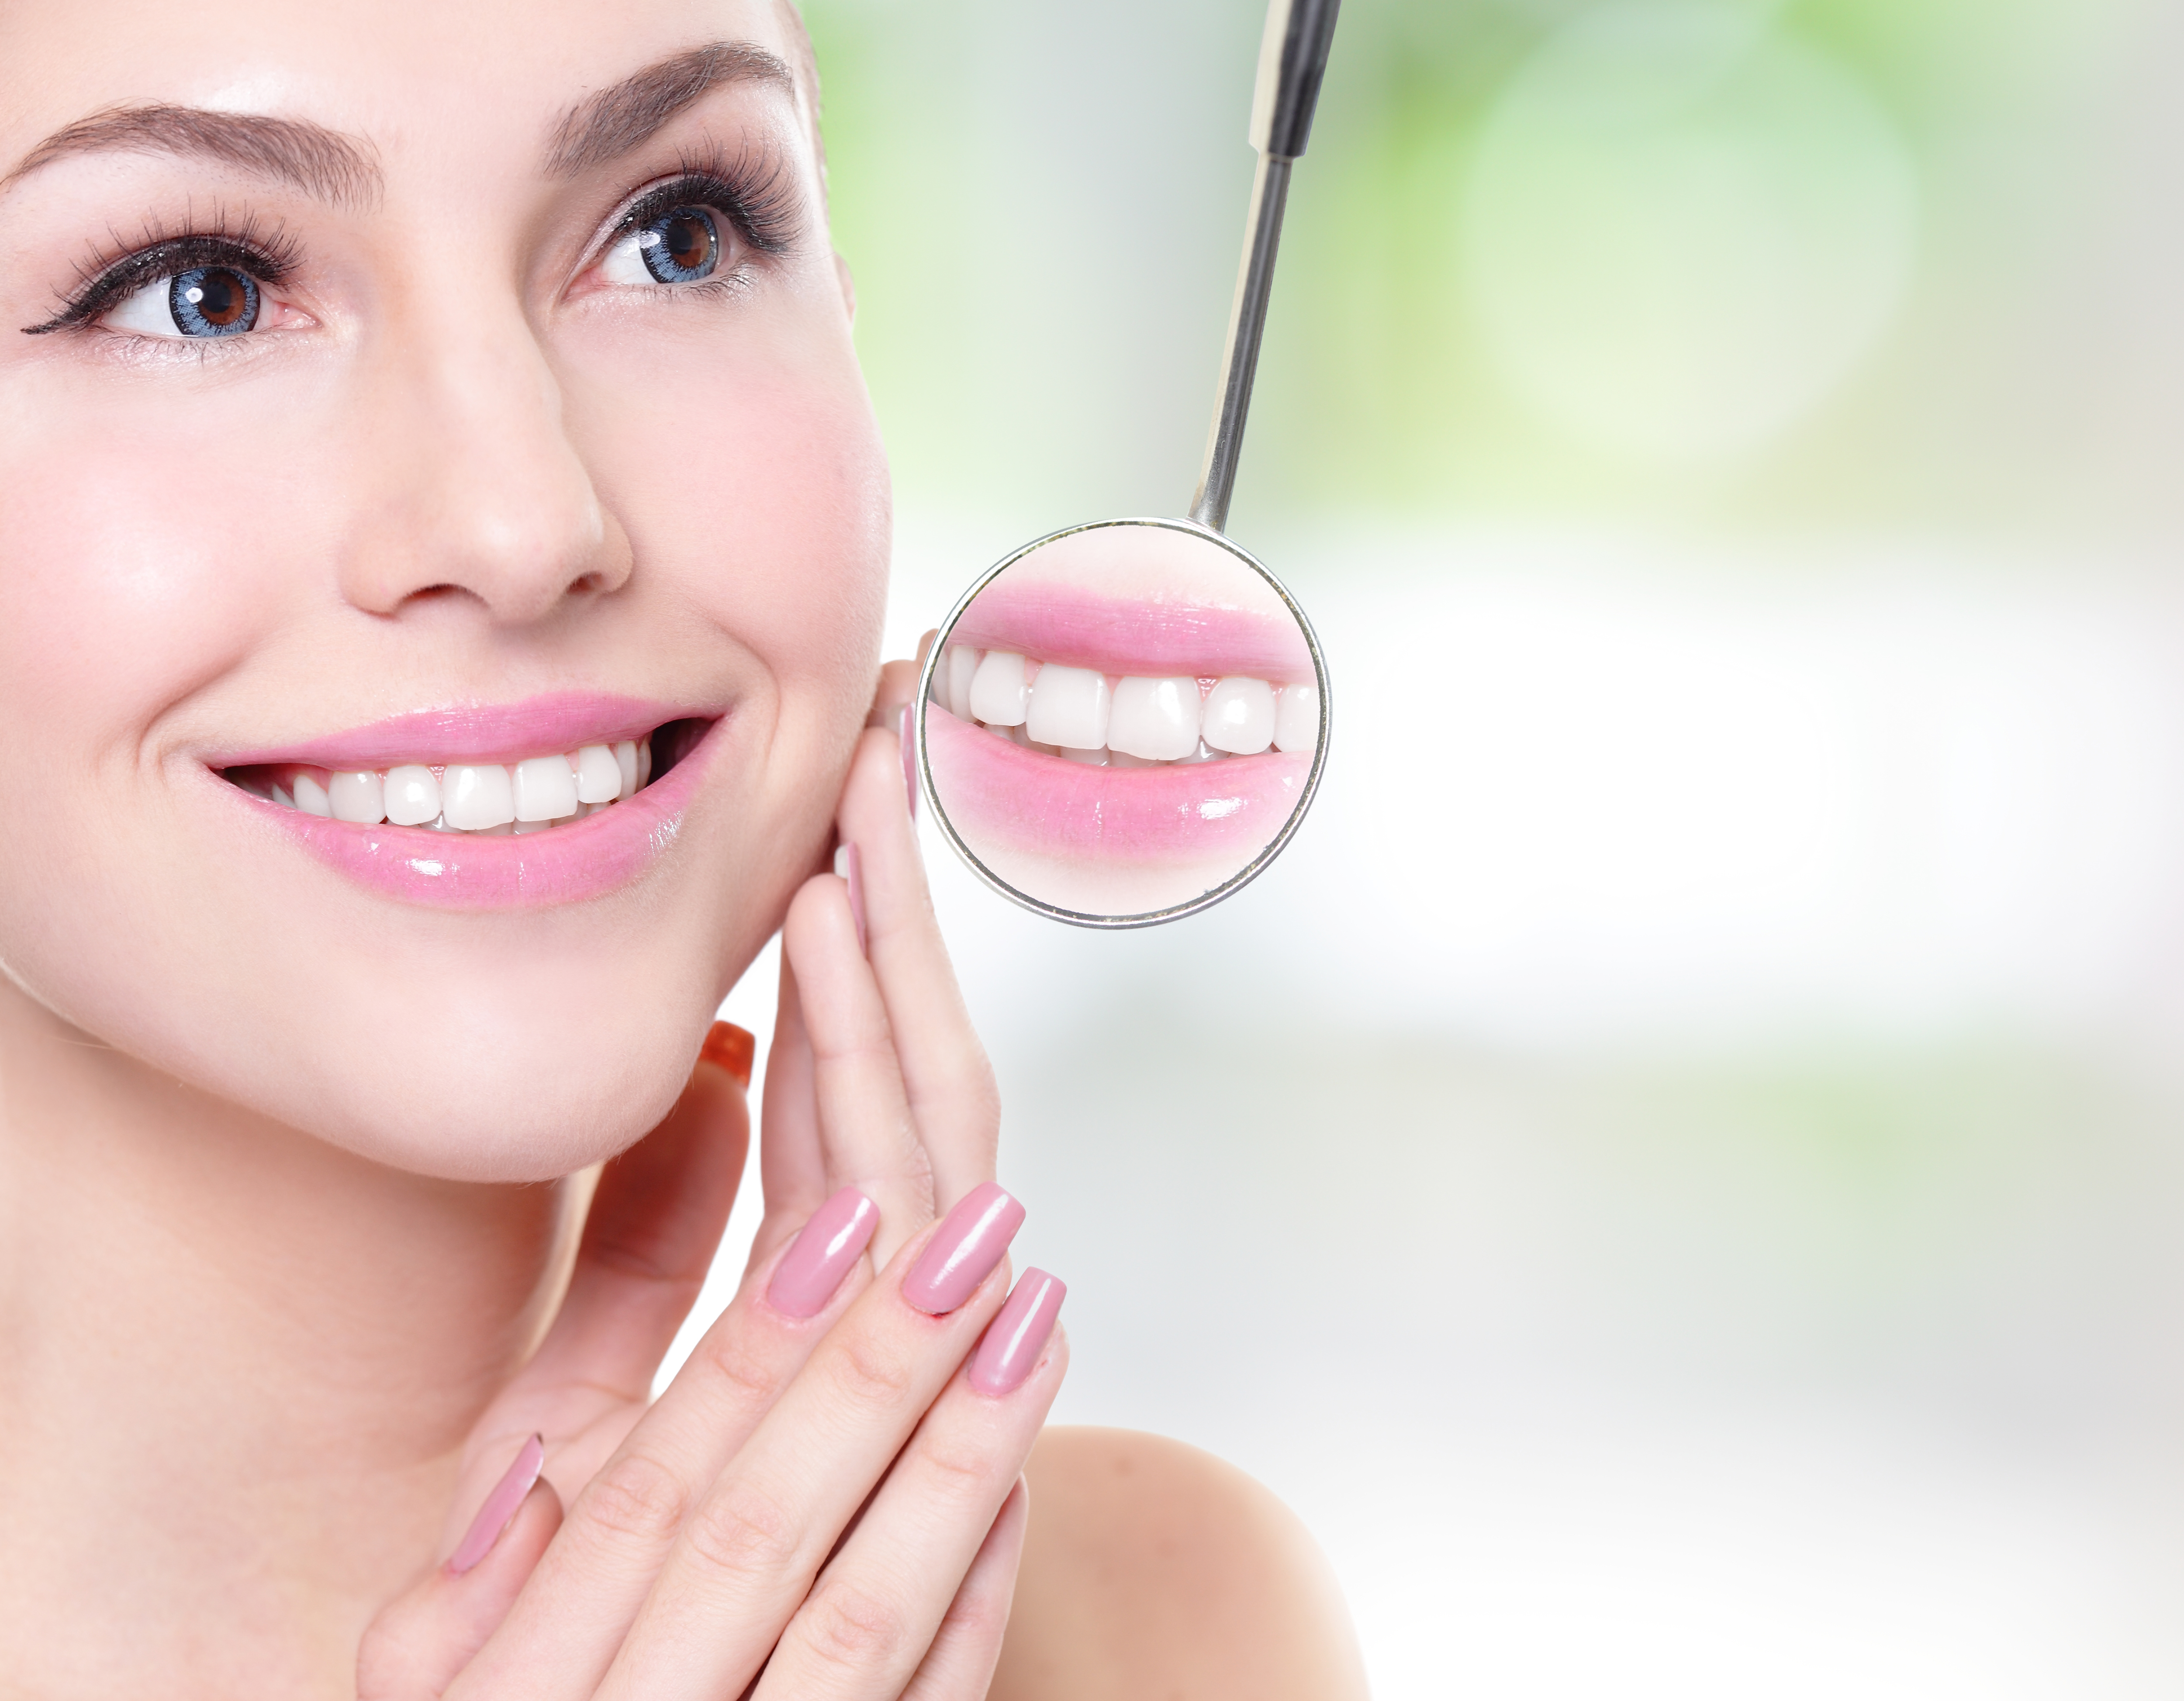 Woman with dental implants